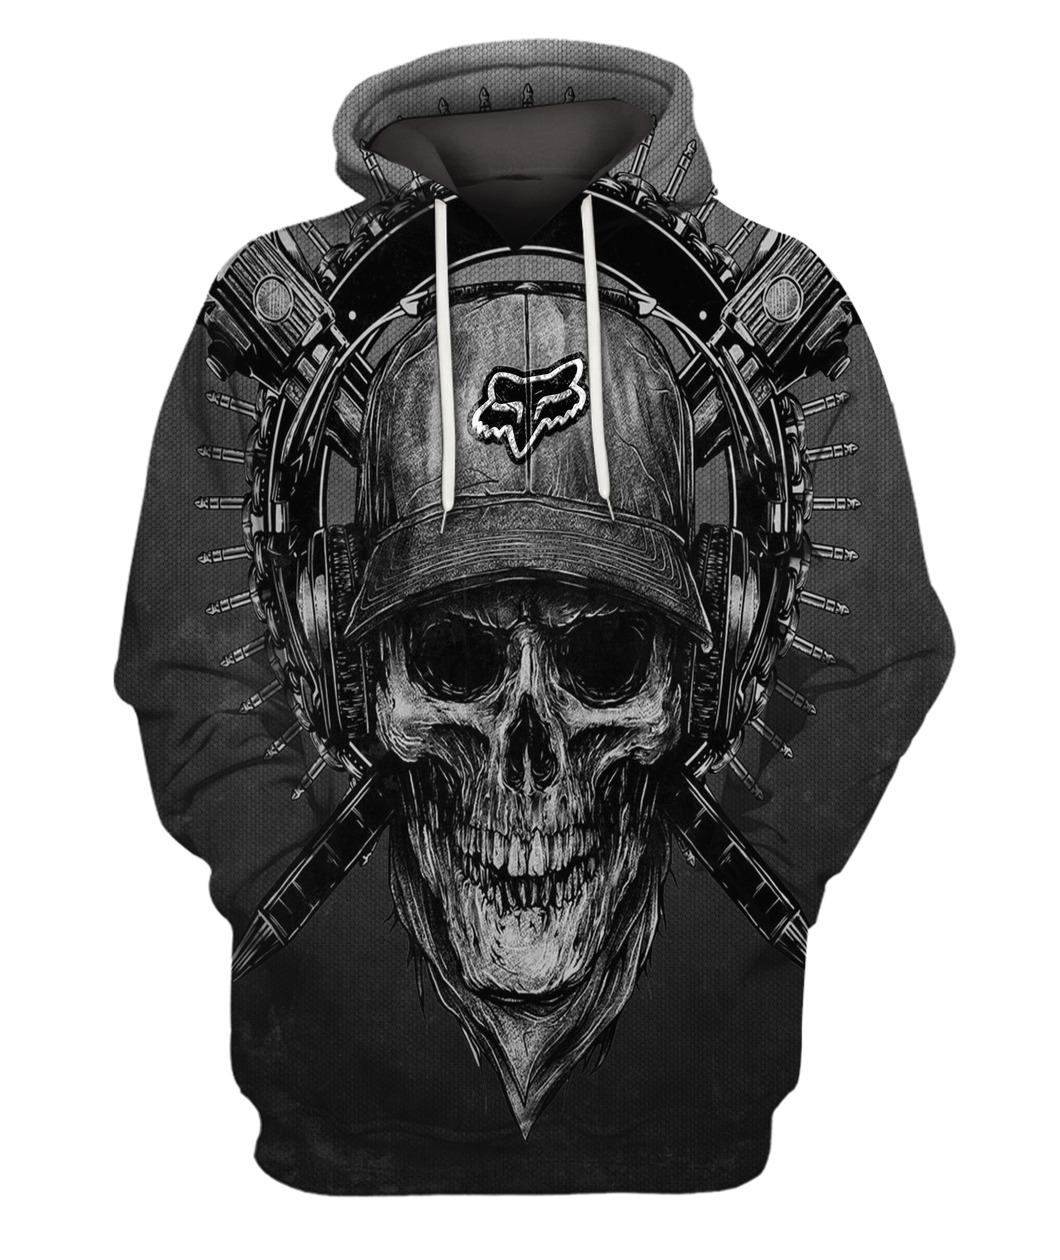 Terror noise division fox racing all over print hoodie 1